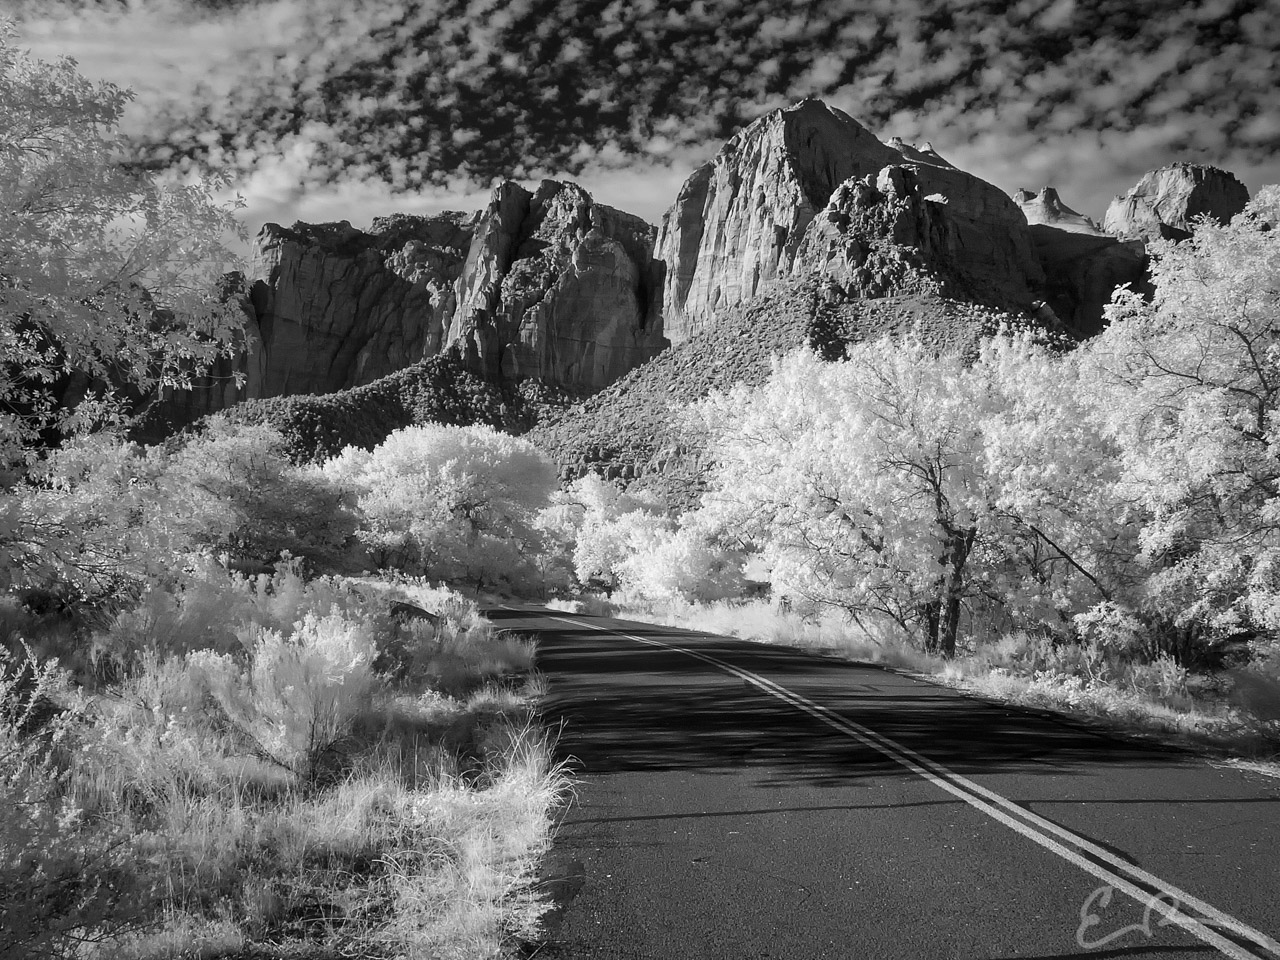 Service Road Only in Infrared